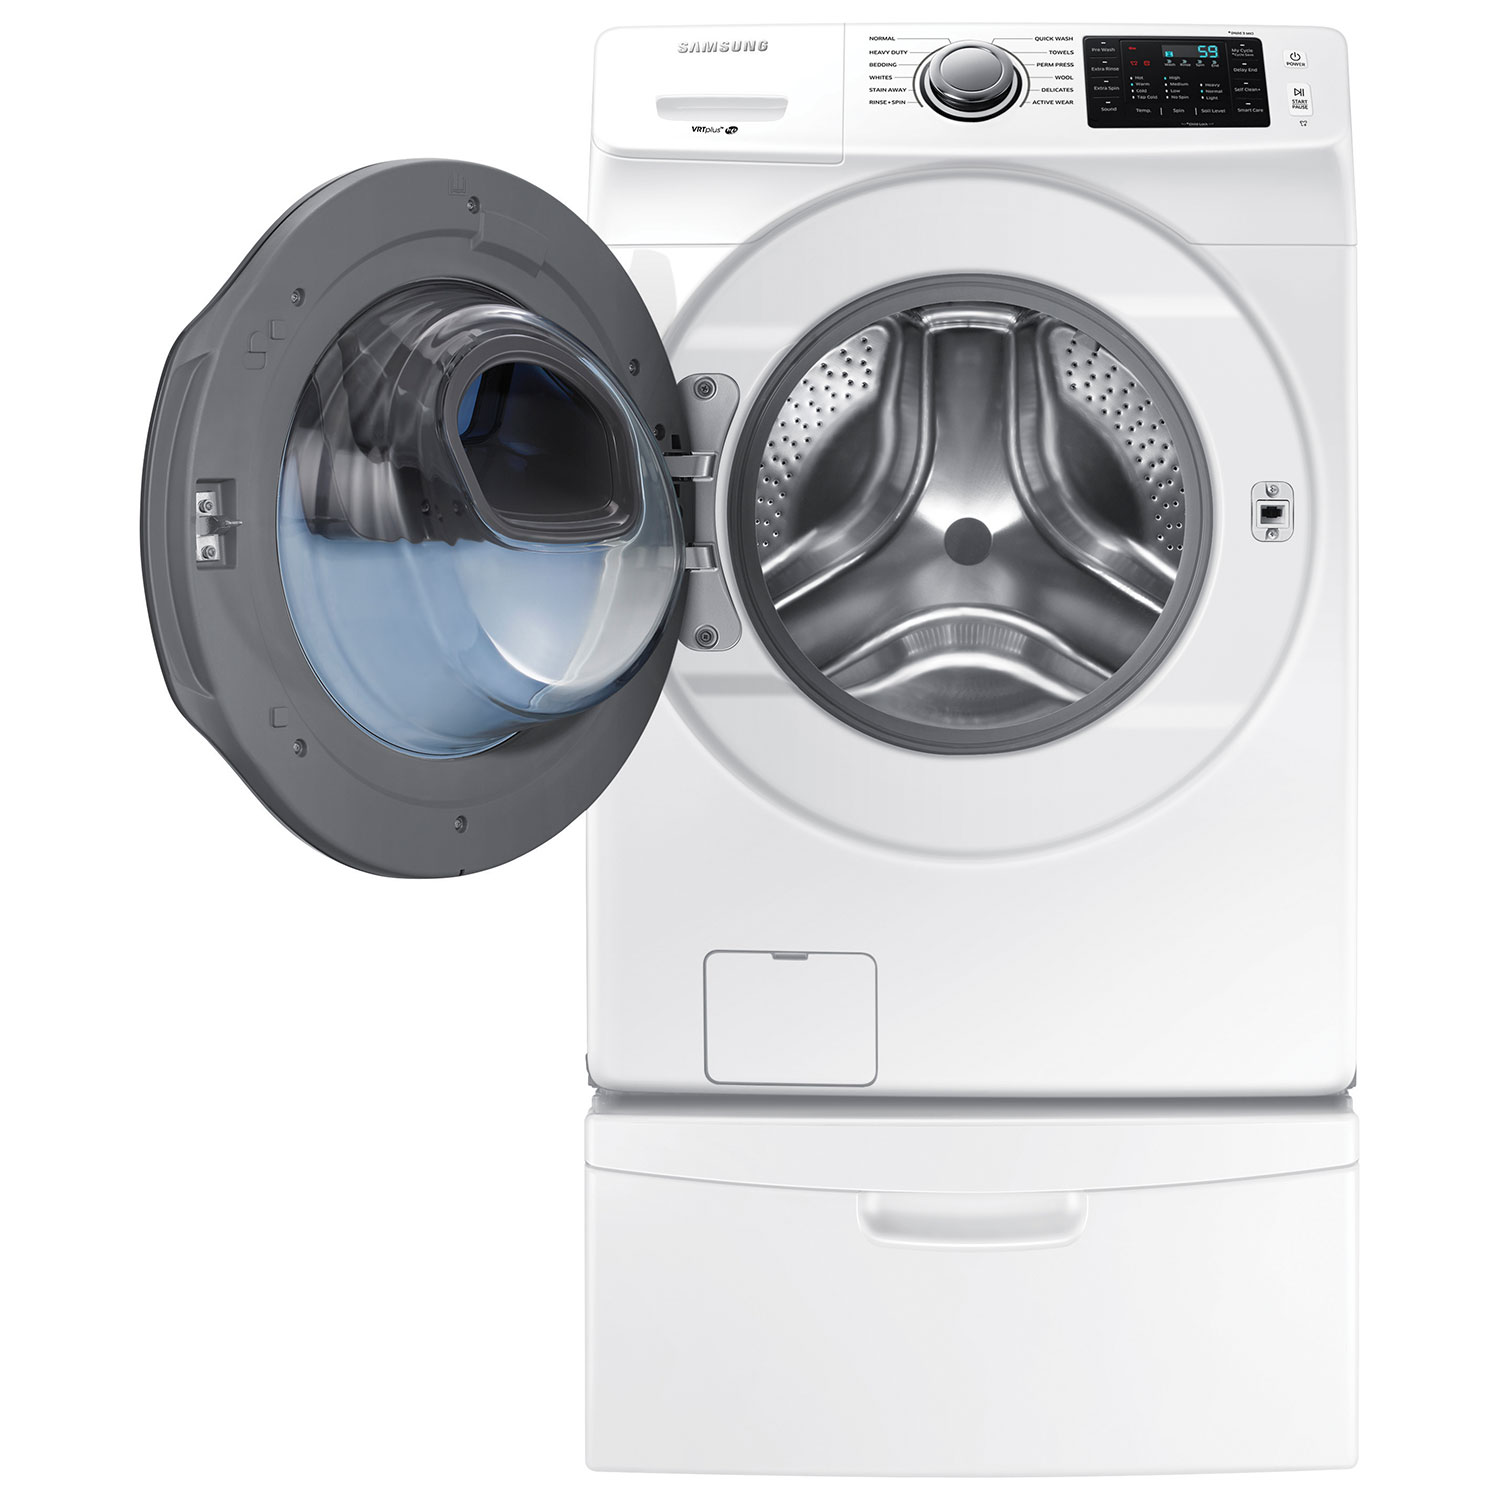 samsung 52 cu ft front load washer wf45k6200aw white washers best buy canada